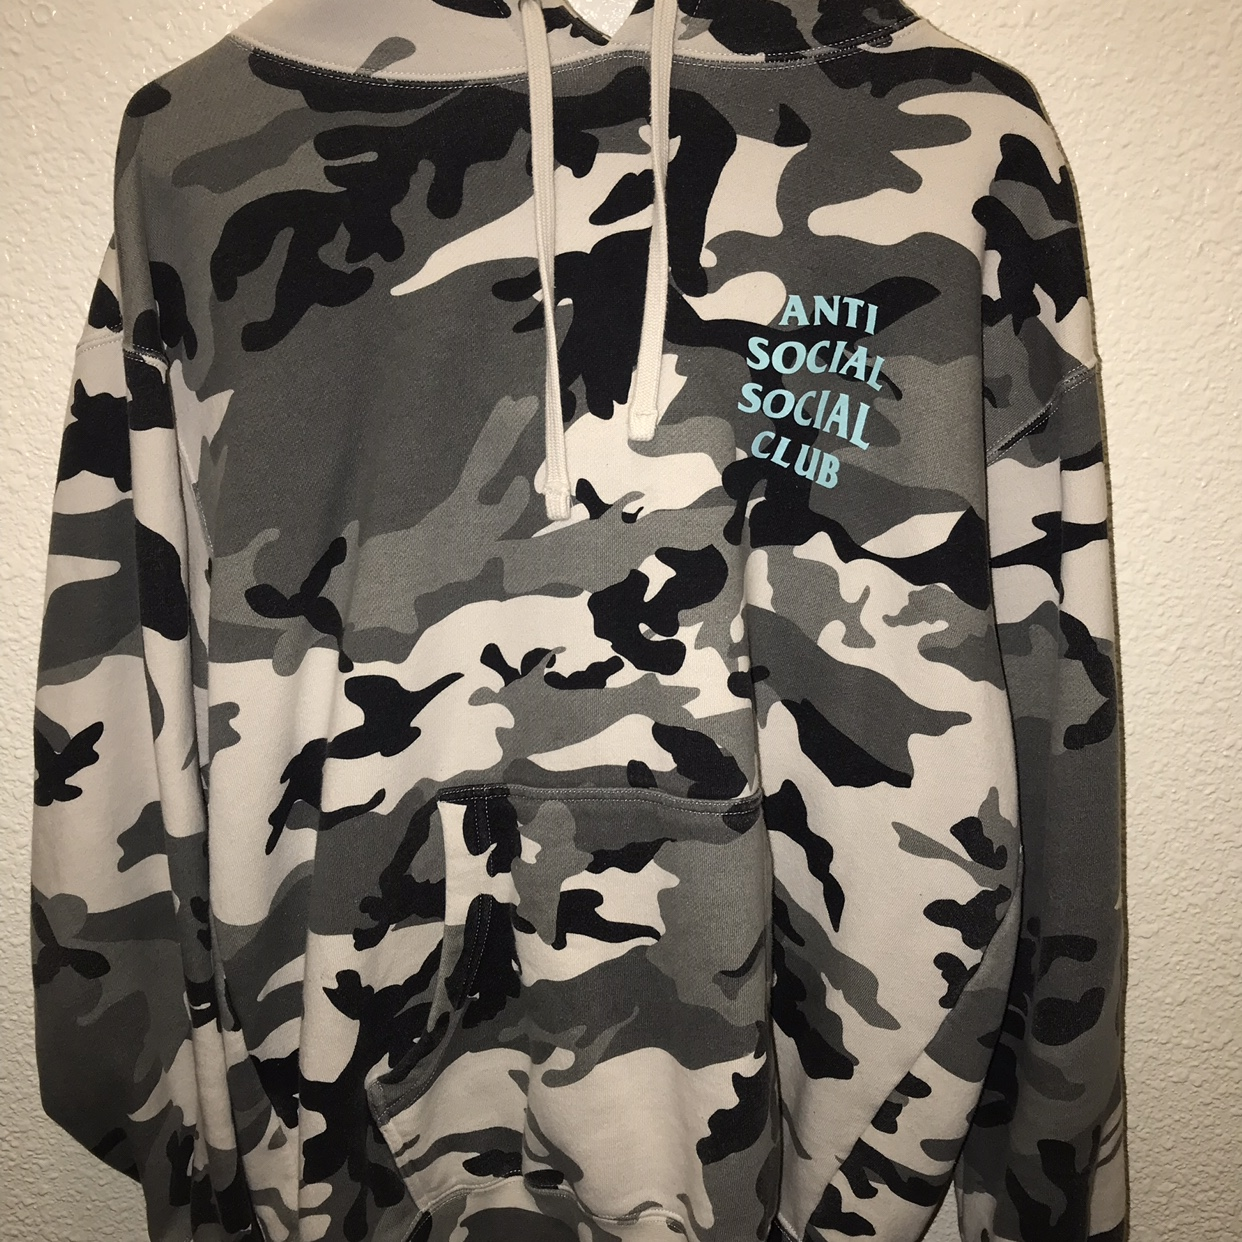 Hoodie ASSC Brand New Anti Social Social Club Melrose Ave